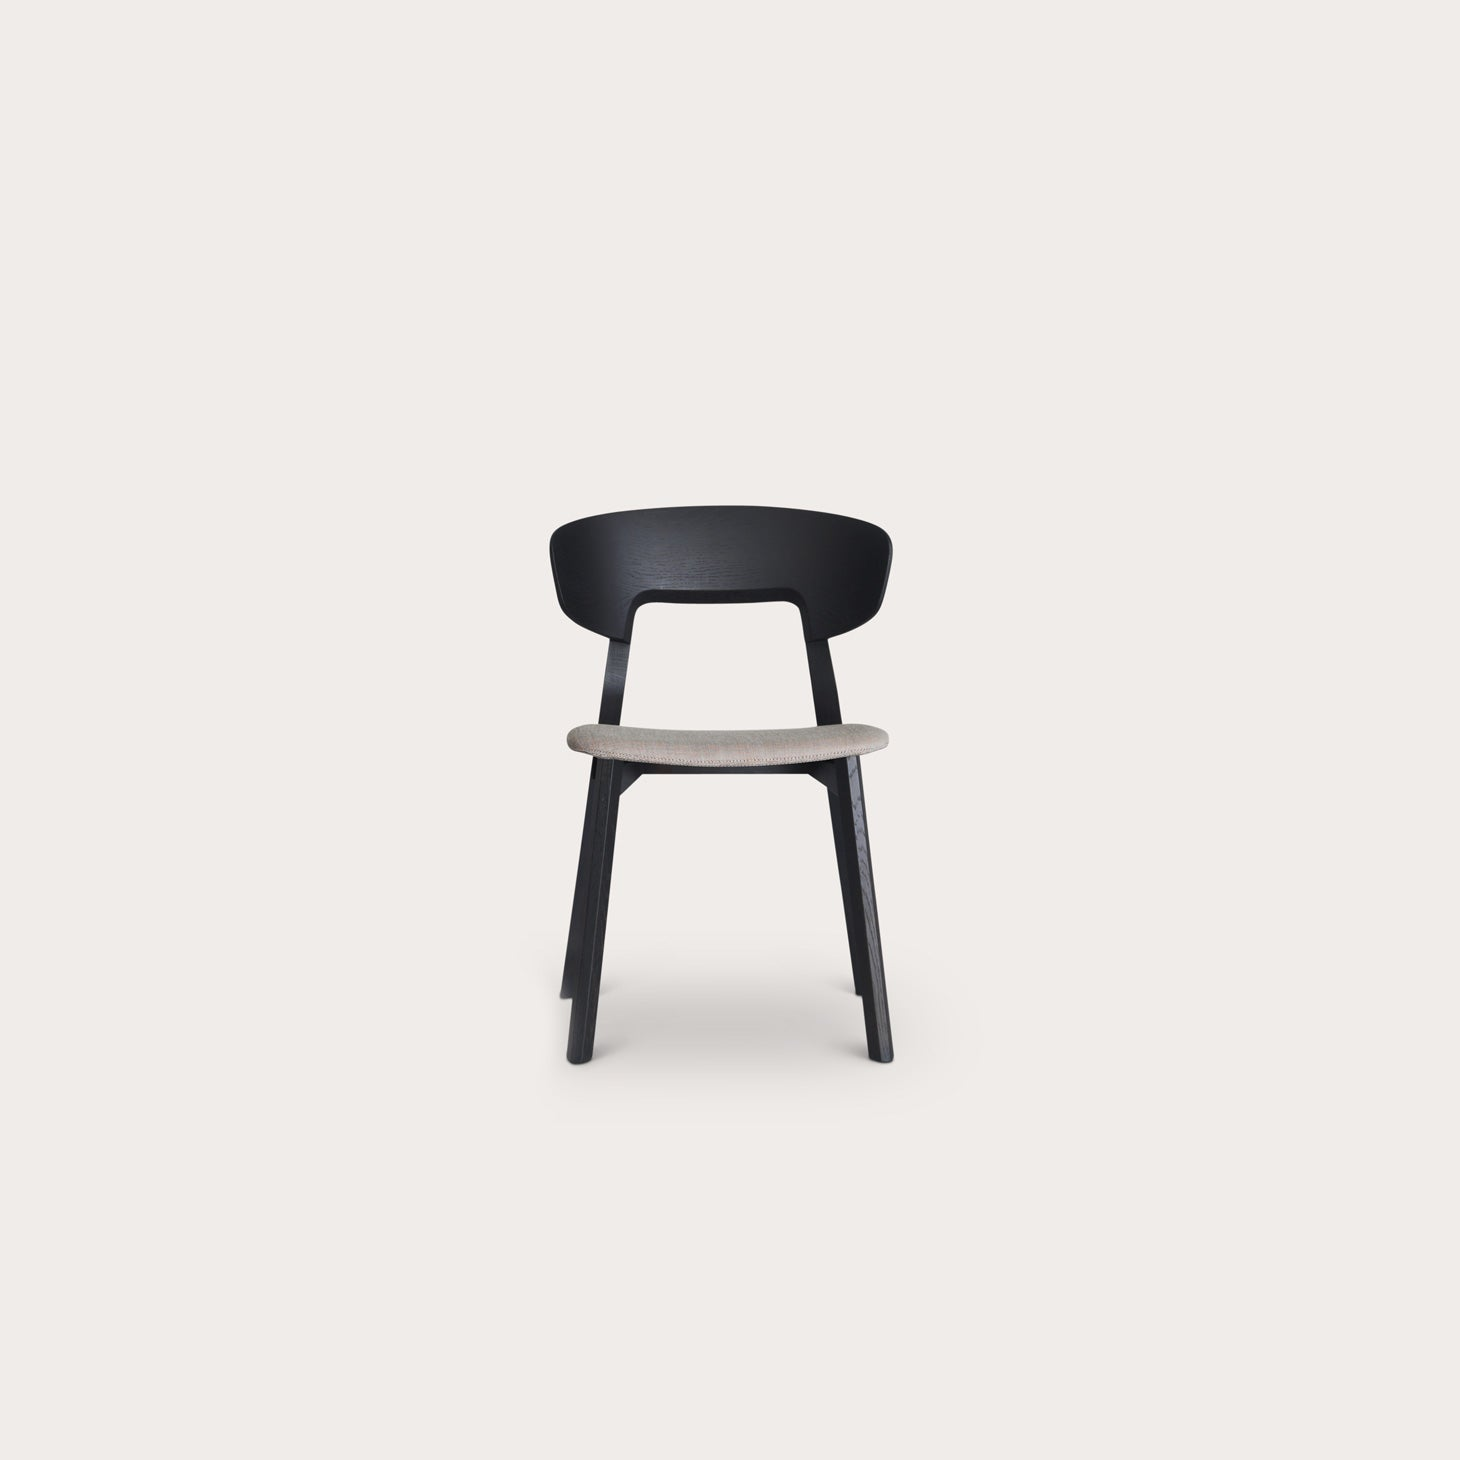 Nonoto Comfort Dining Chair Seating Laeufer & Keichel Designer Furniture Sku: 006-120-10114